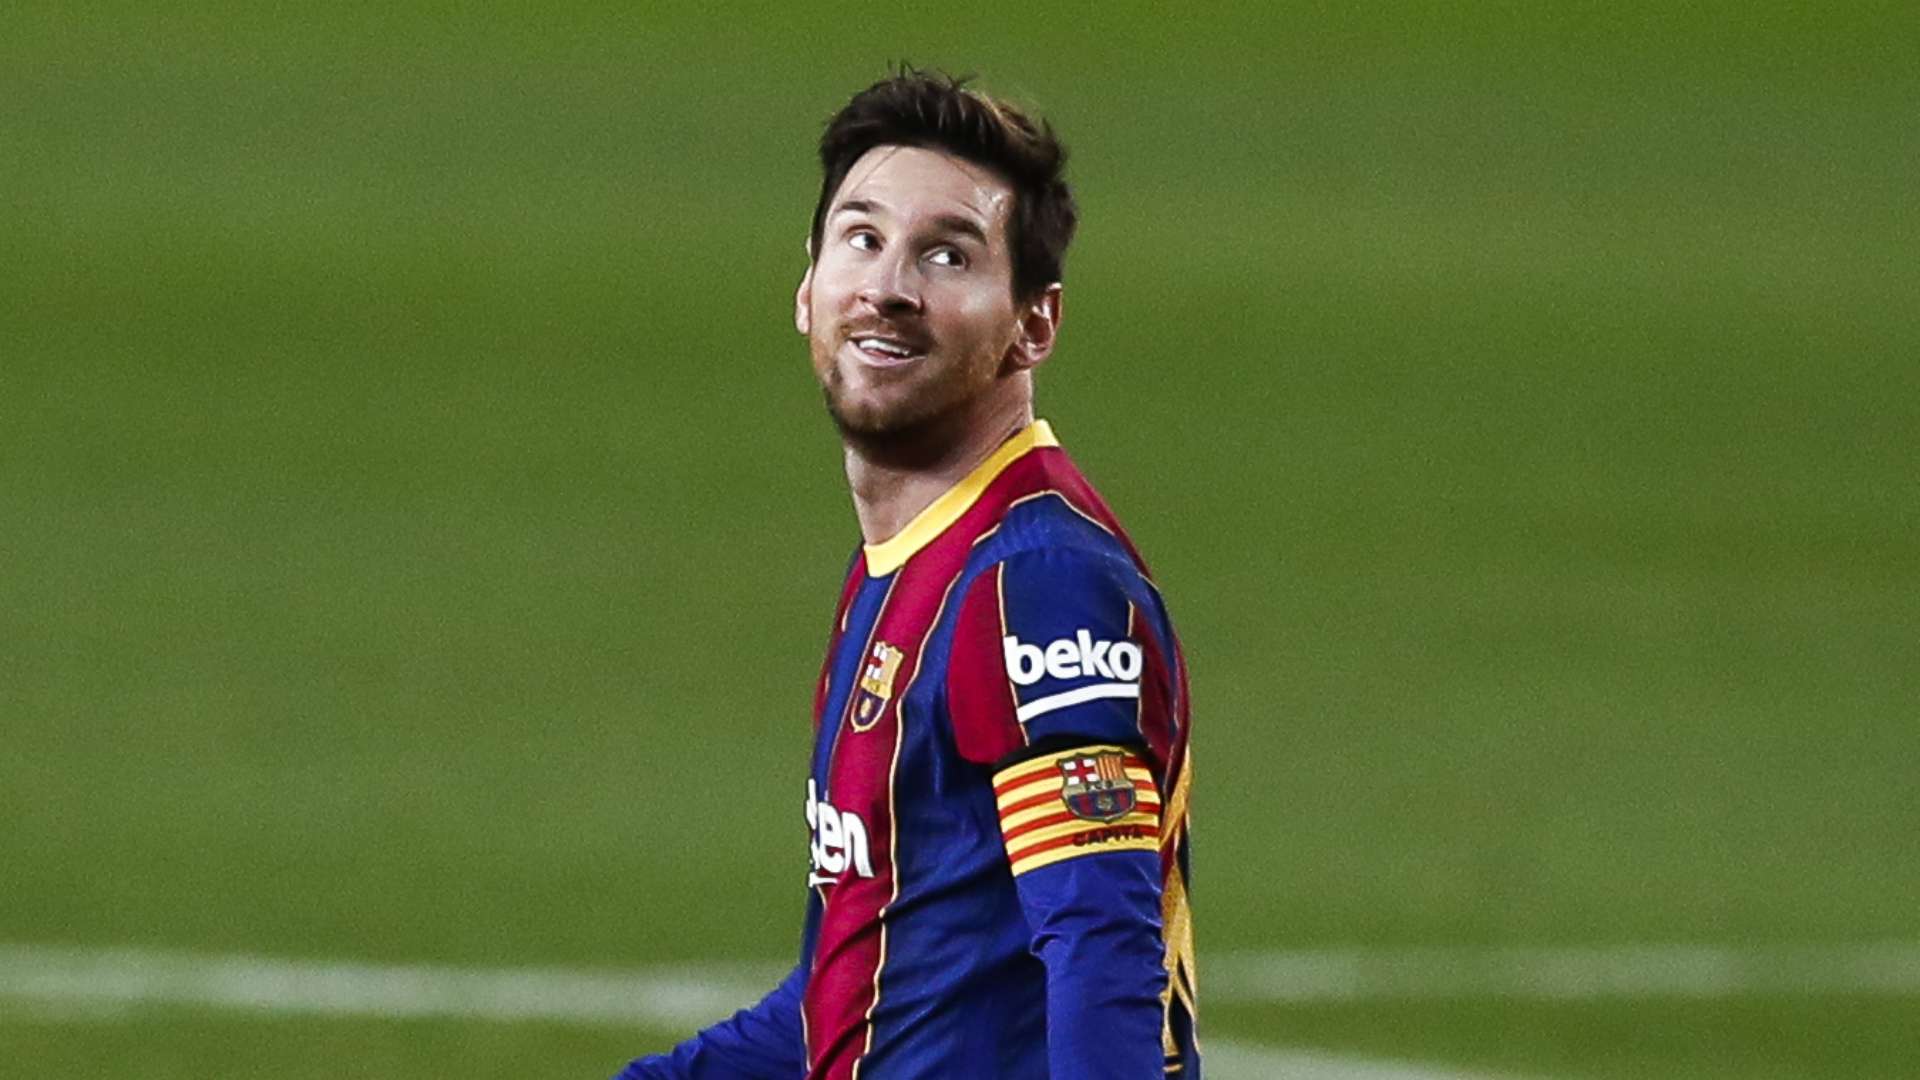 Messi surpasses Pele record - the astonishing numbers behind his 644 Barcelona goals